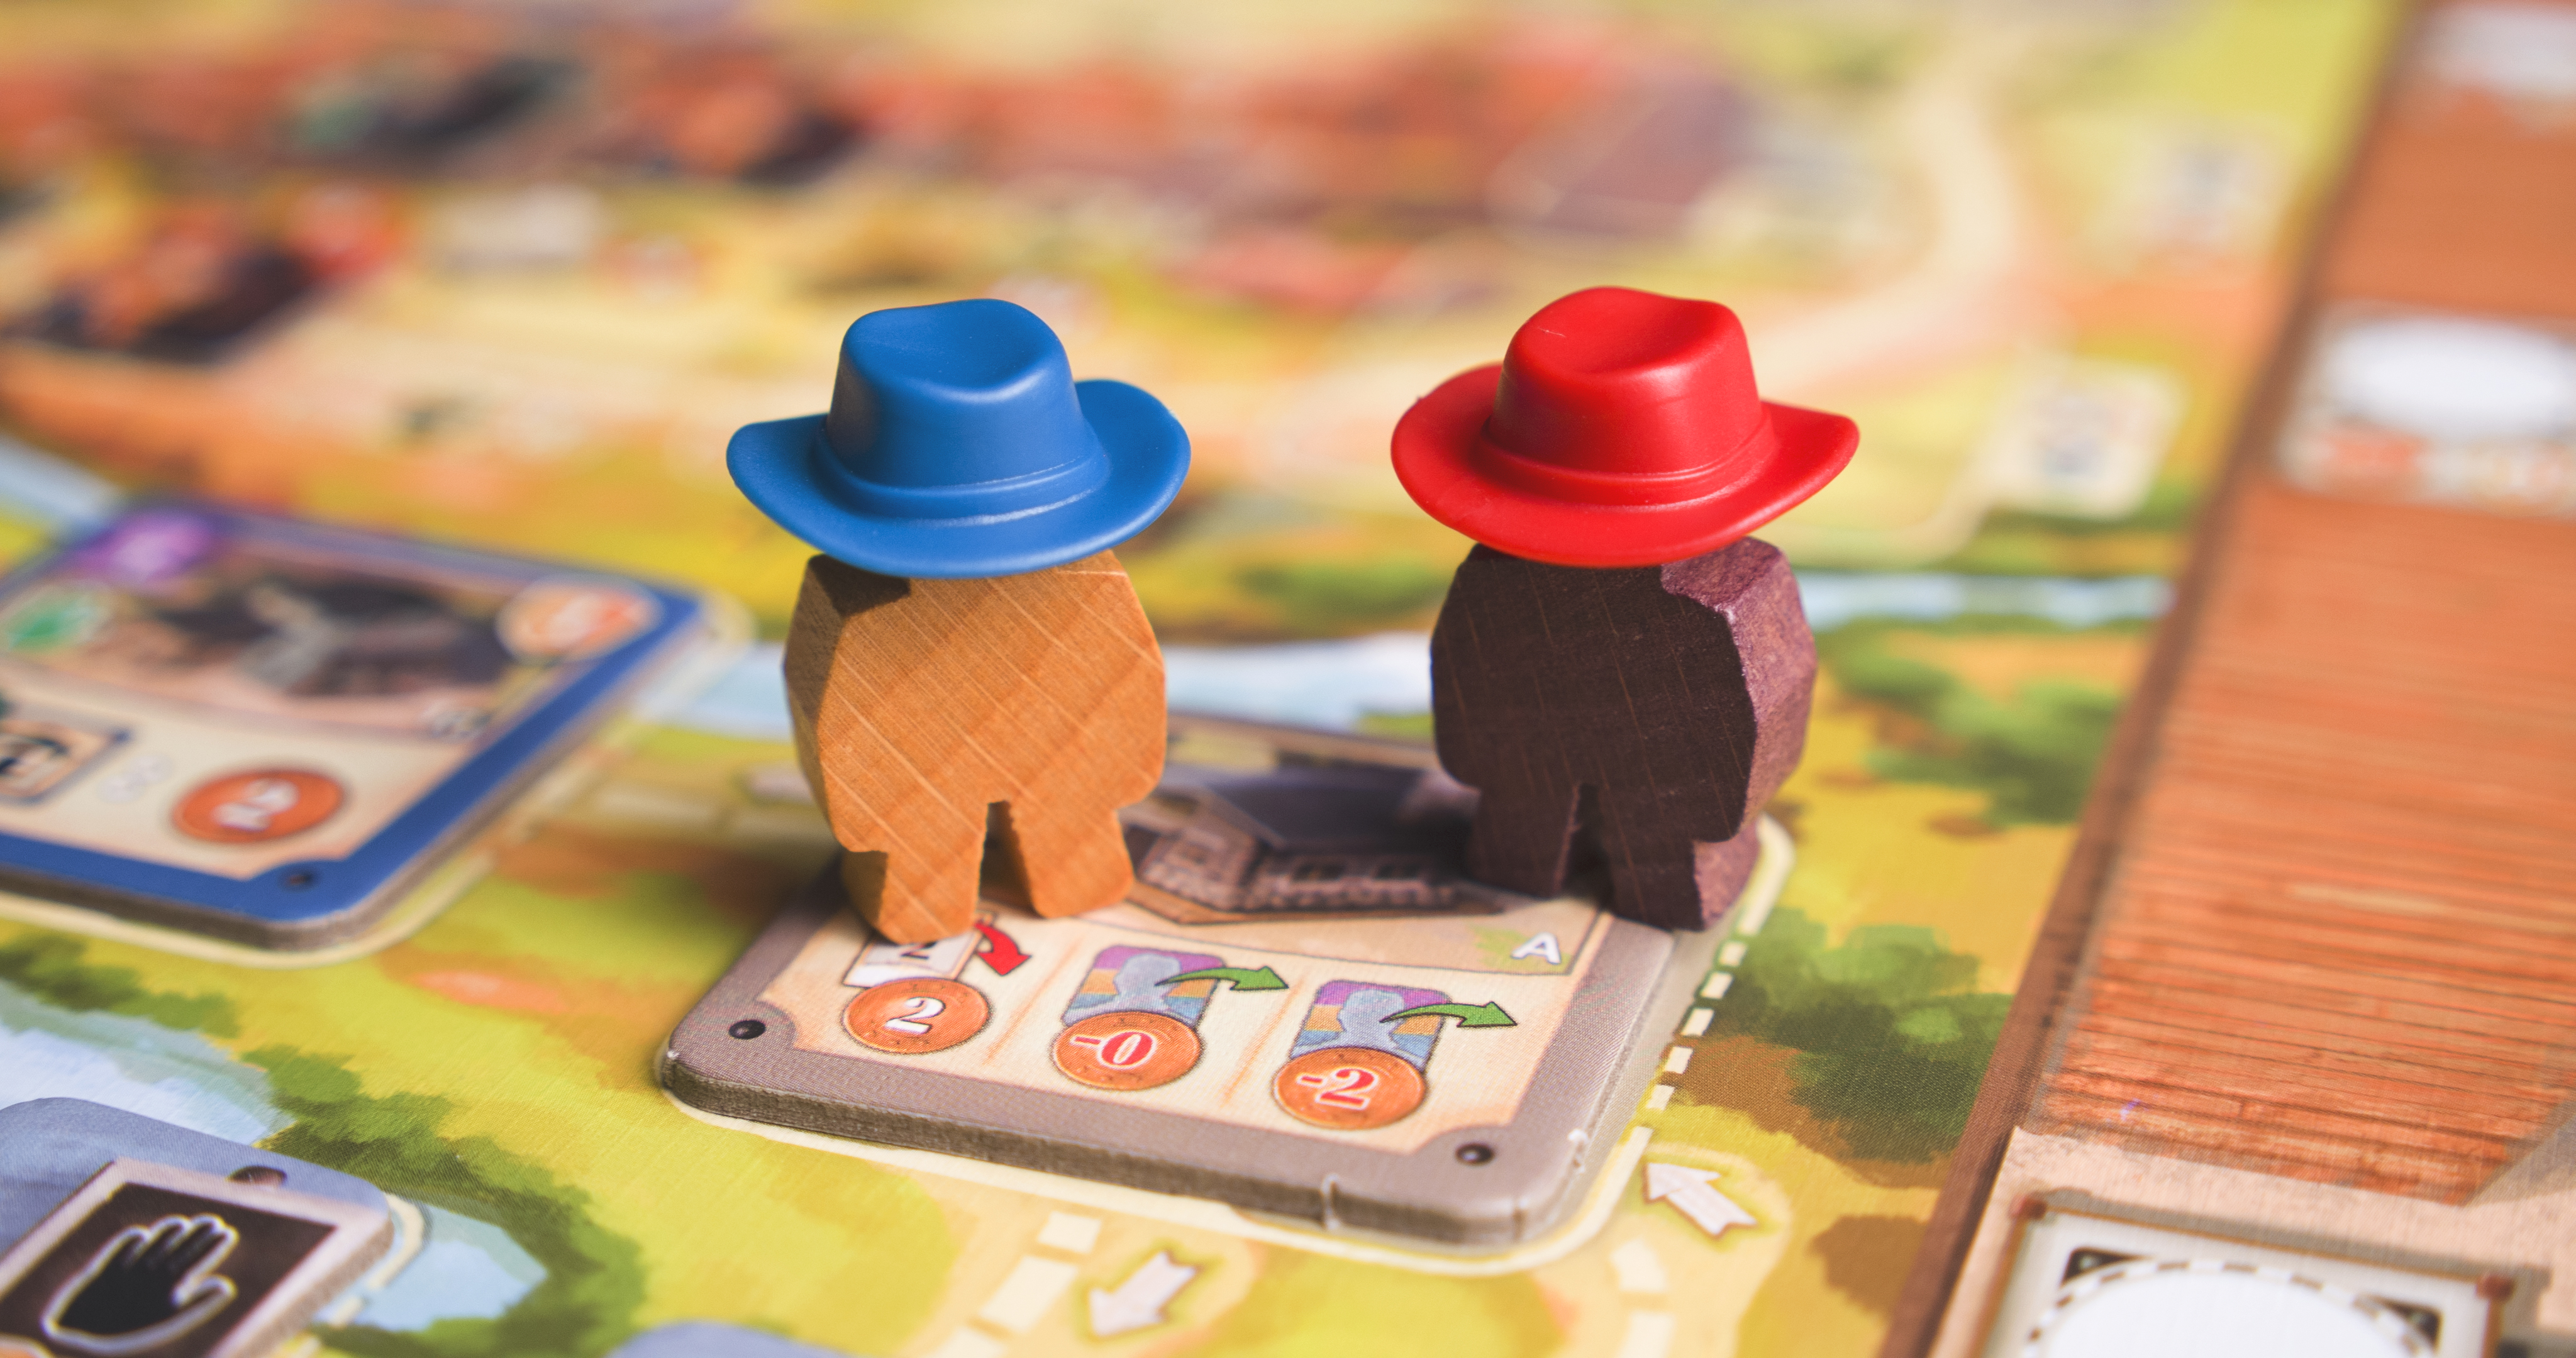 The meeples in GWT wear 10-gallon hats.